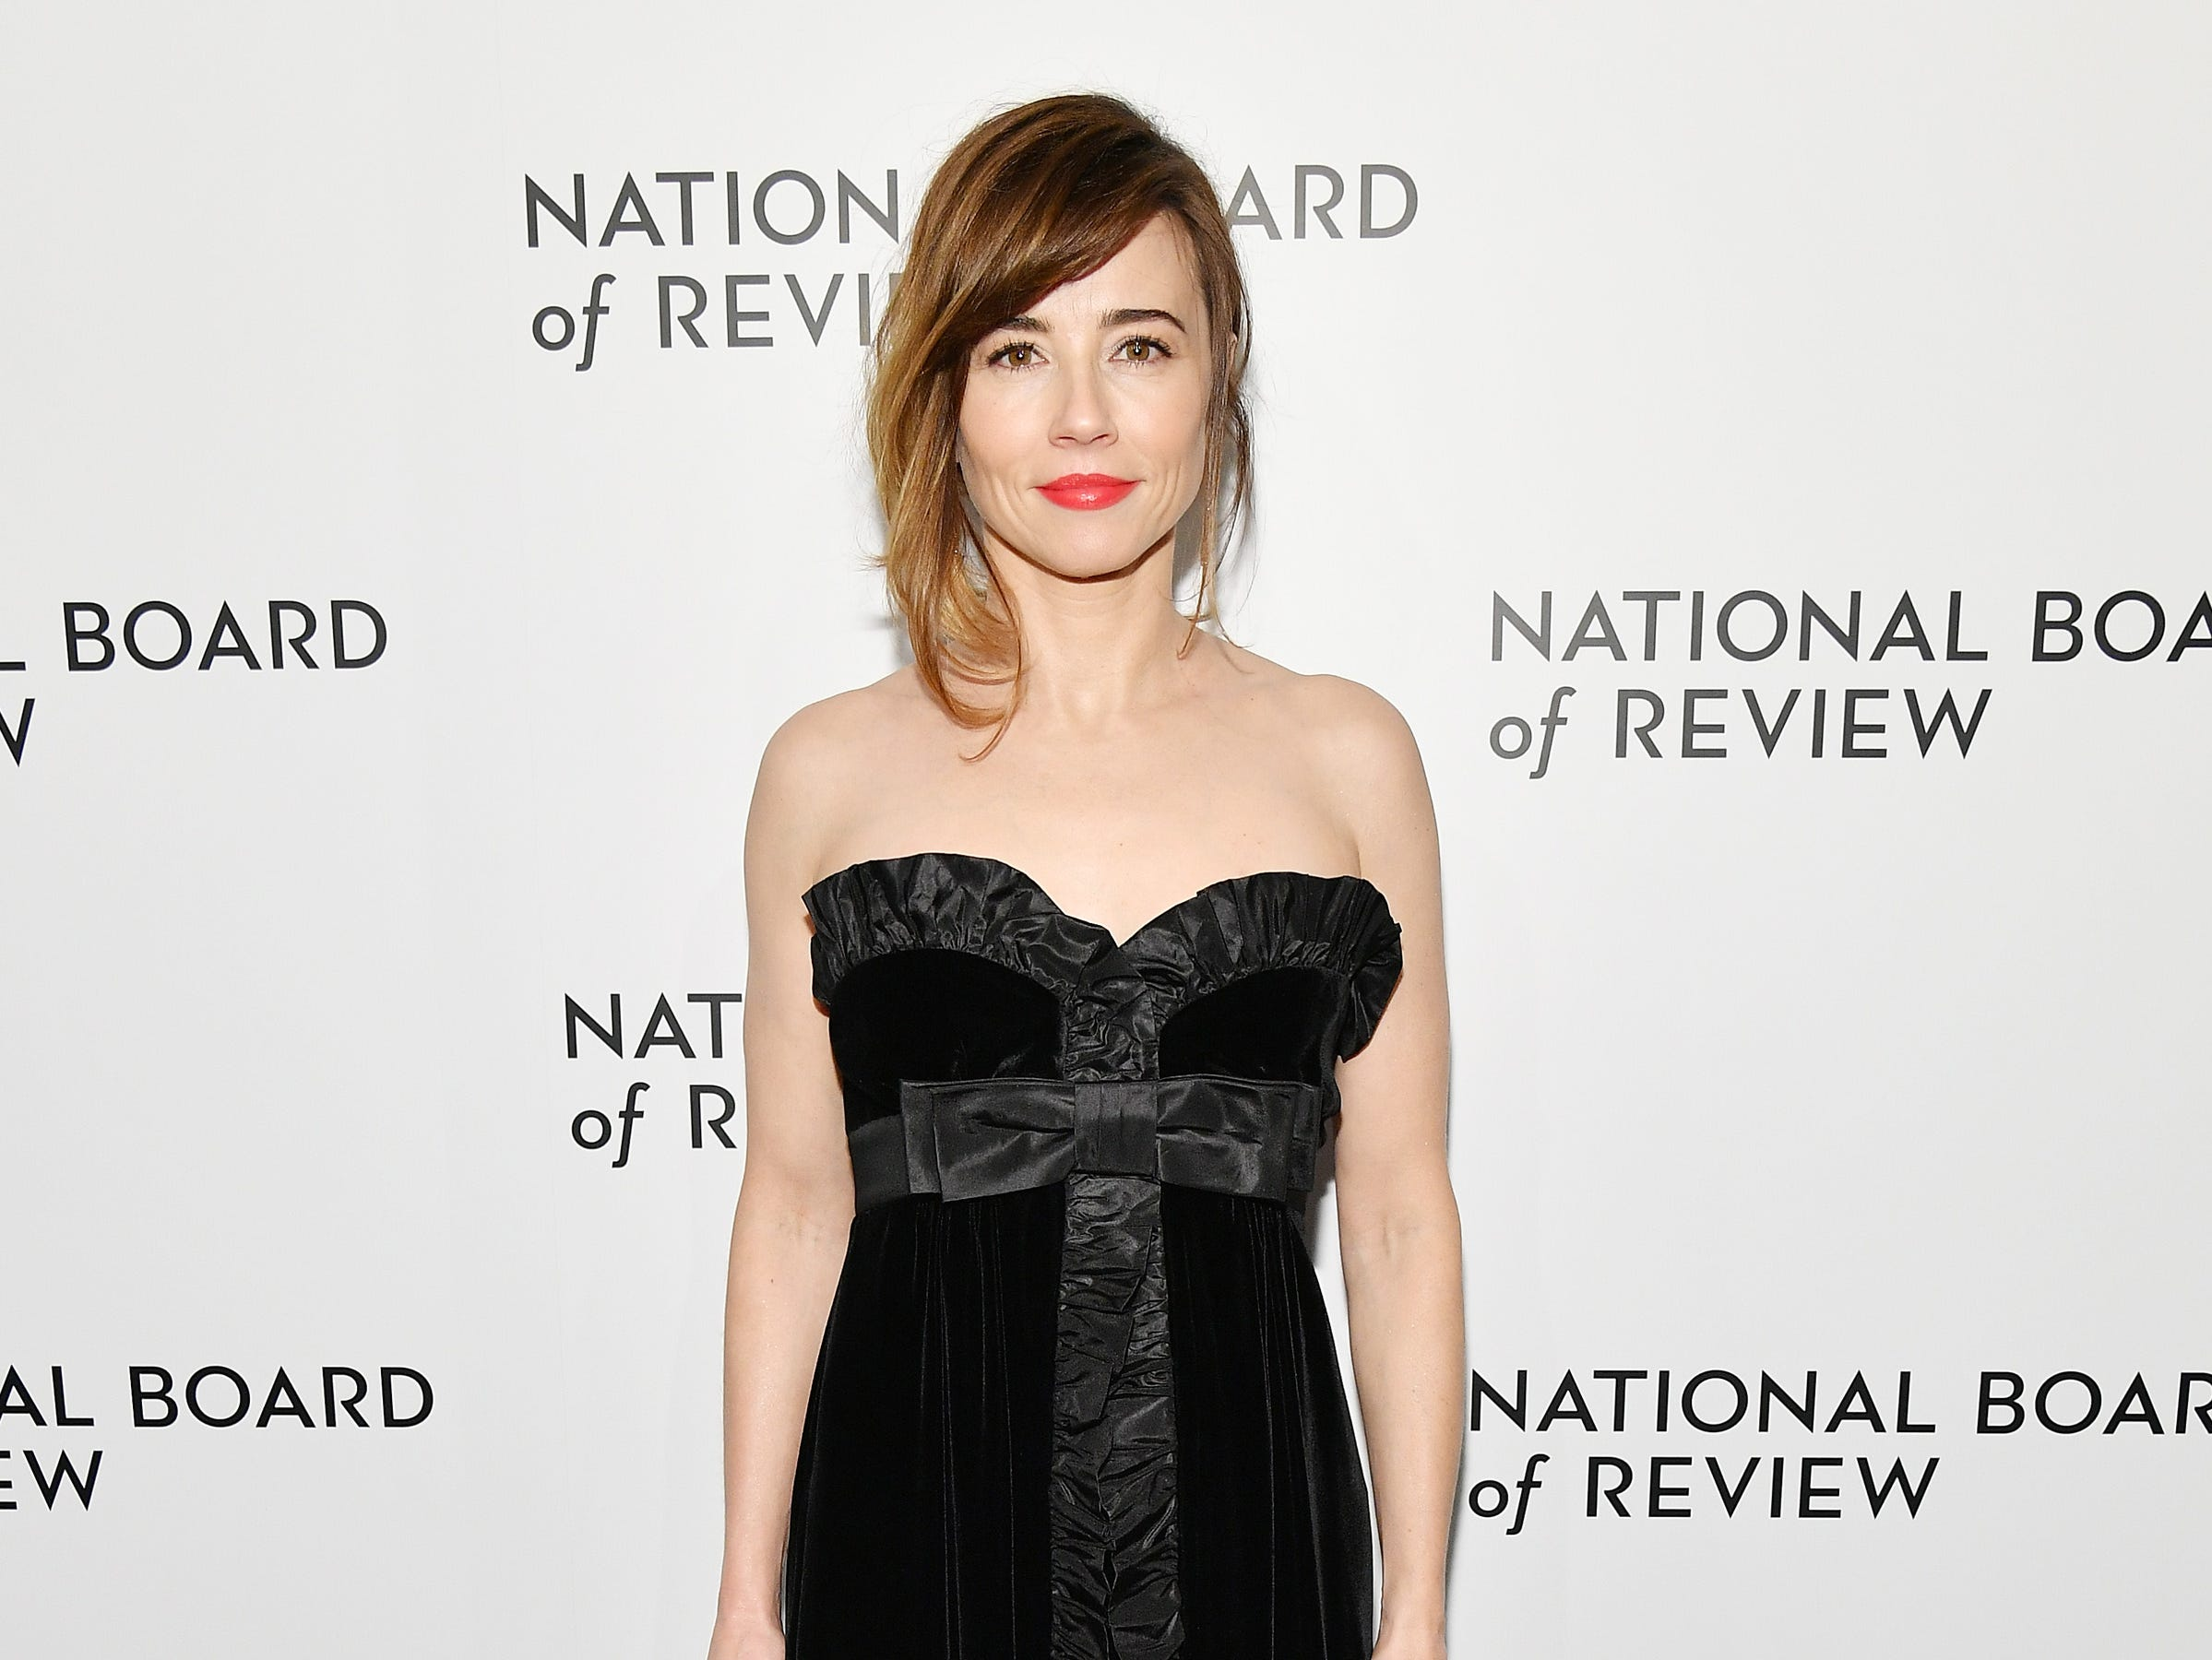 NEW YORK, NY - JANUARY 08:  Linda Cardellini attends The National Board of Review Annual Awards Gala at Cipriani 42nd Street on January 8, 2019 in New York City.  (Photo by Dia Dipasupil/Getty Images for National Board of Review) ORG XMIT: 775259363 ORIG FILE ID: 1079452696